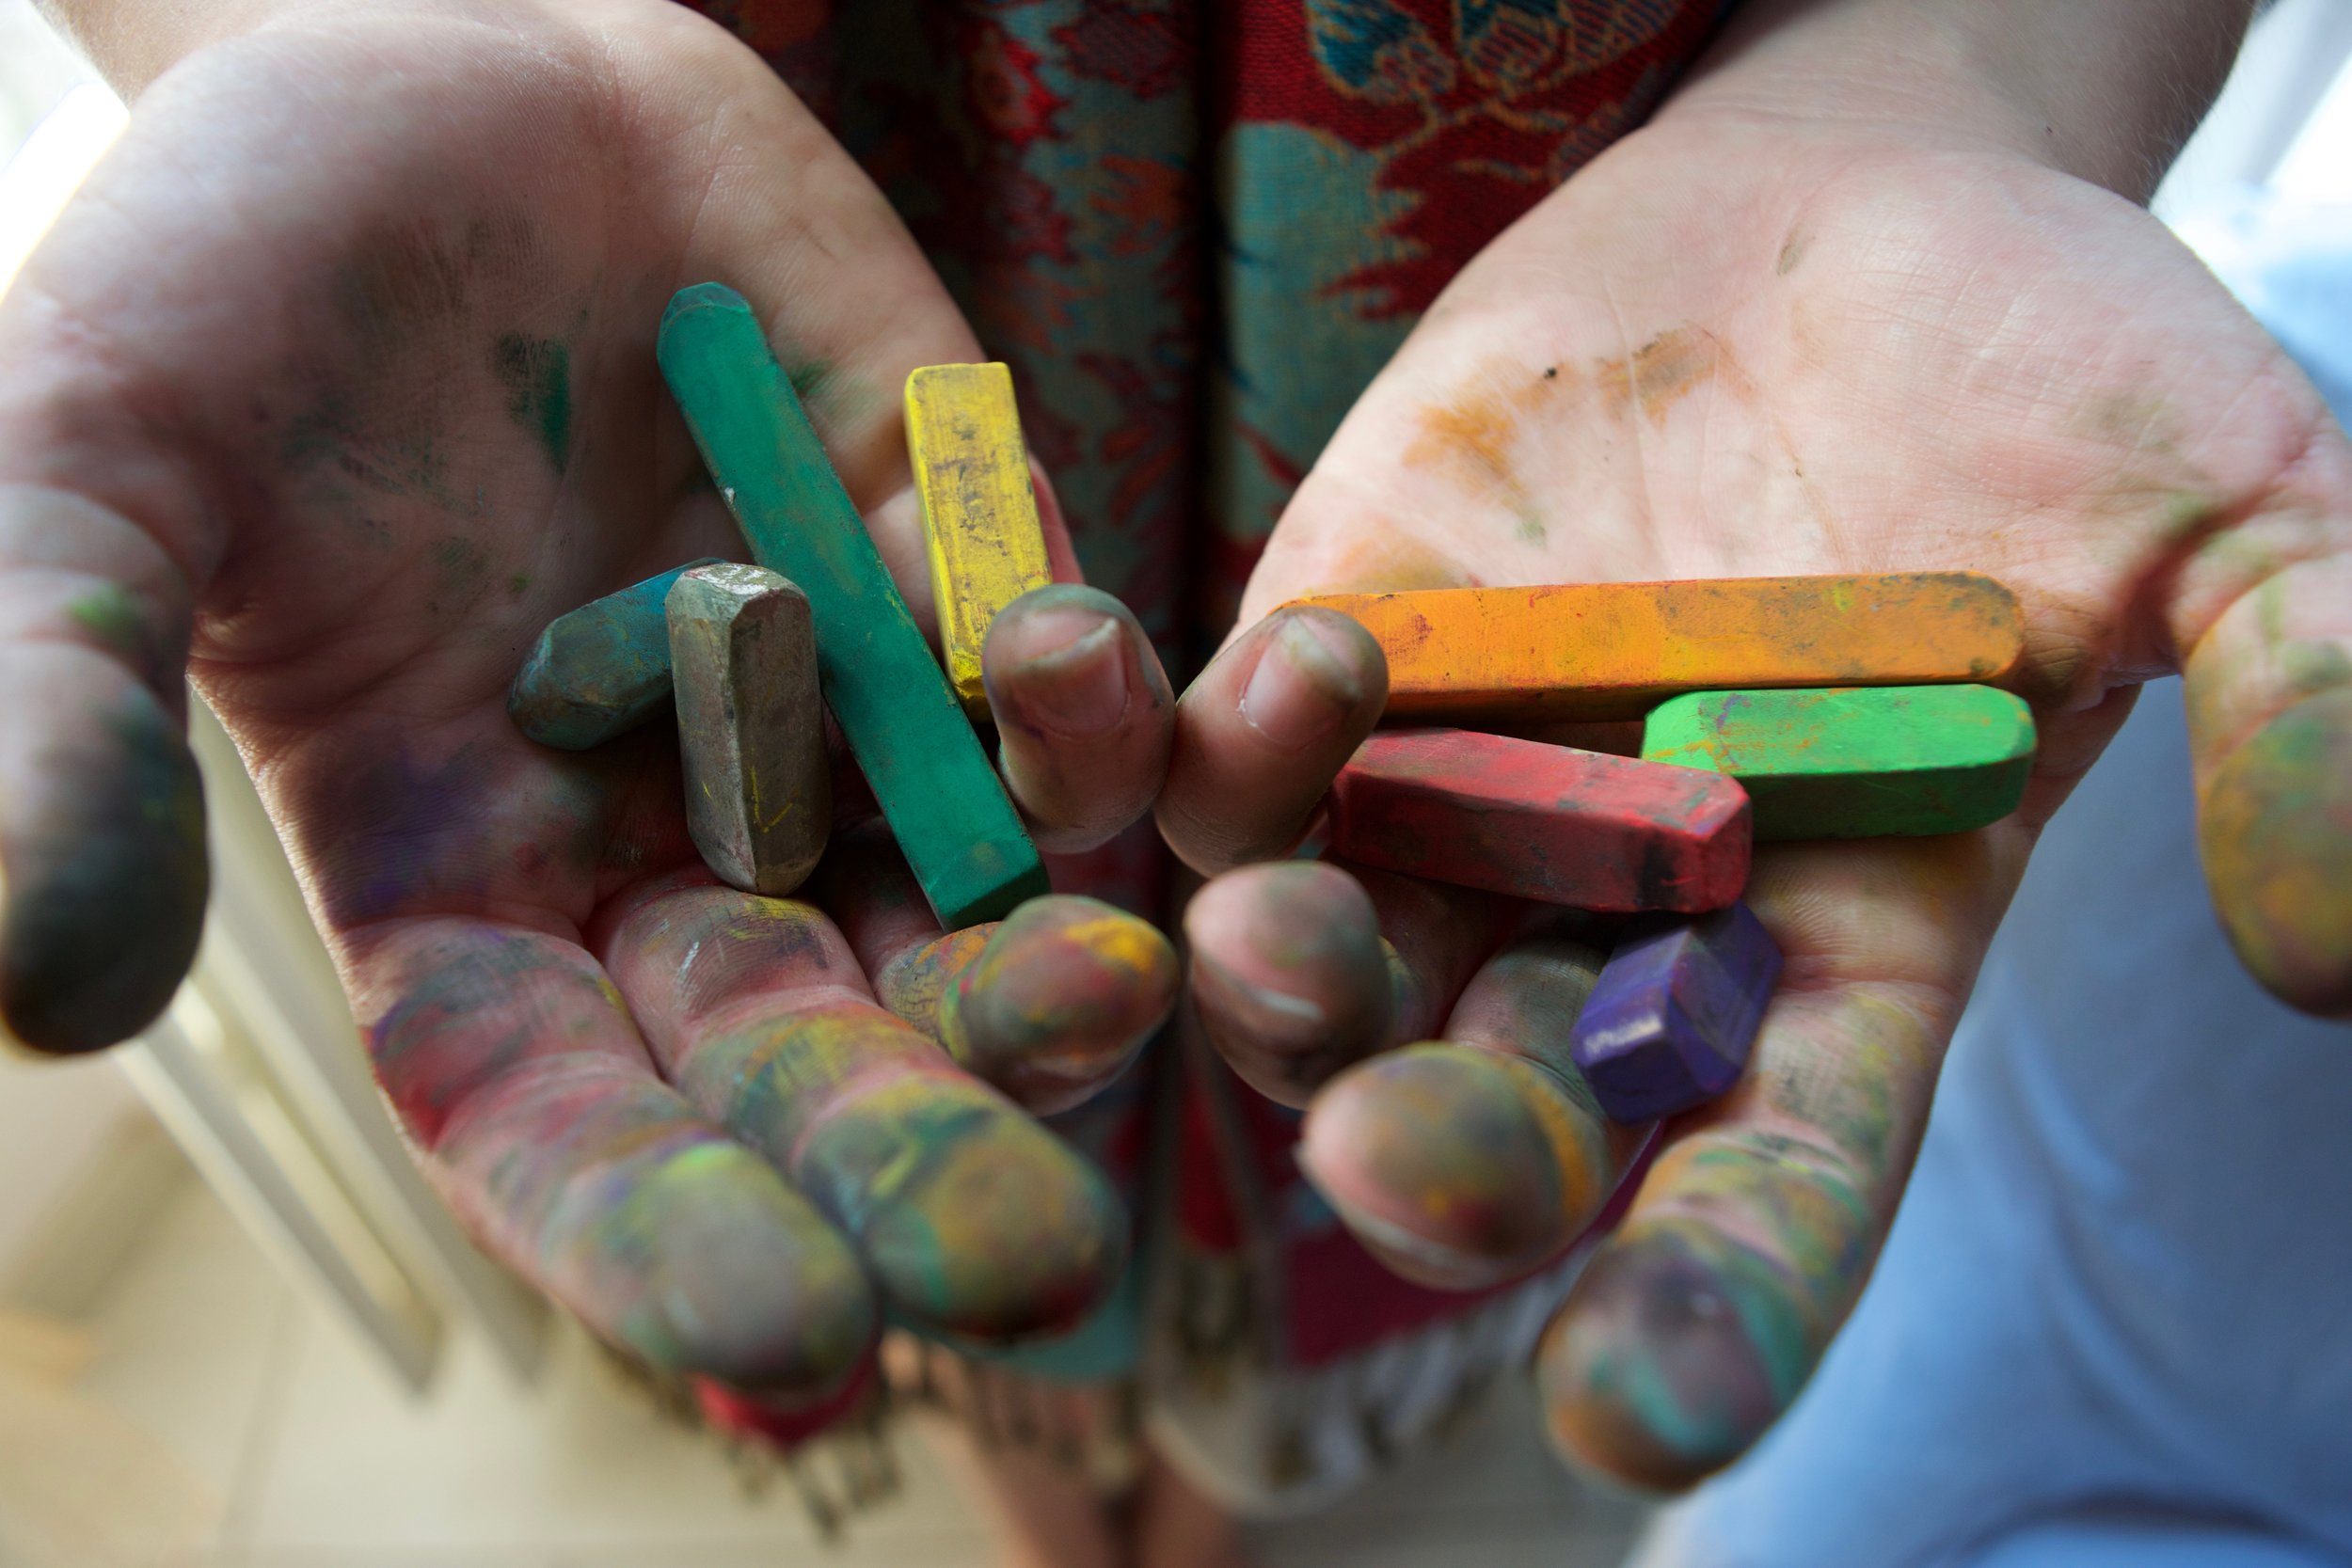 Close-up of artist's smudged hands holding colorful pastels.